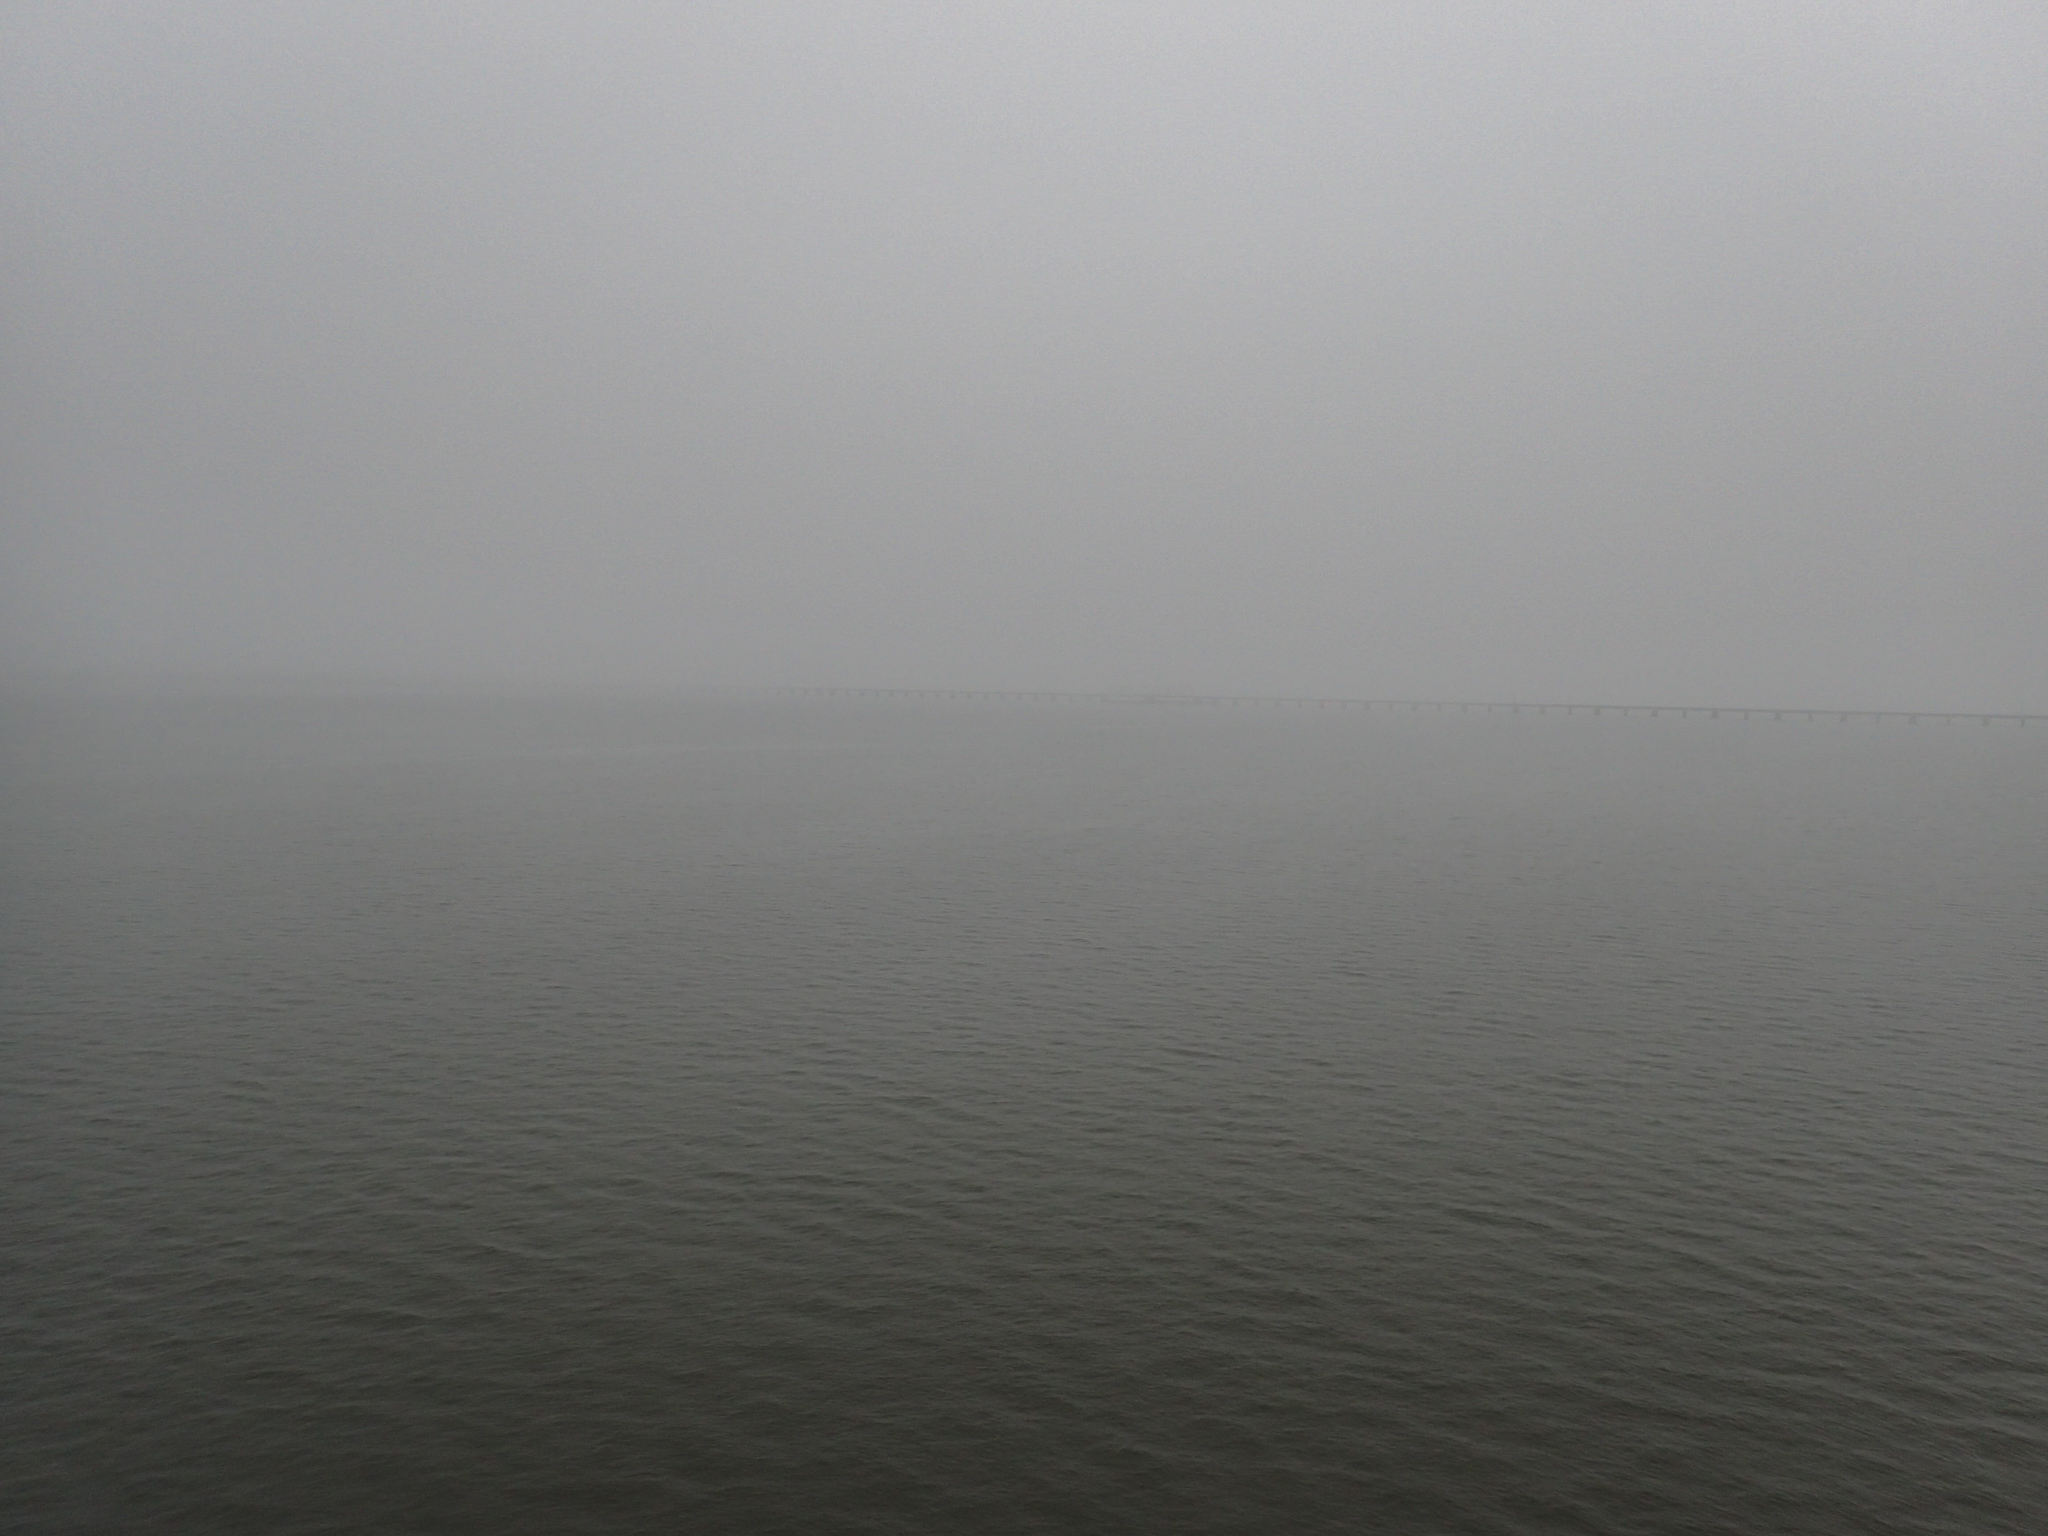 Fog across the Pearl River into Mississippi